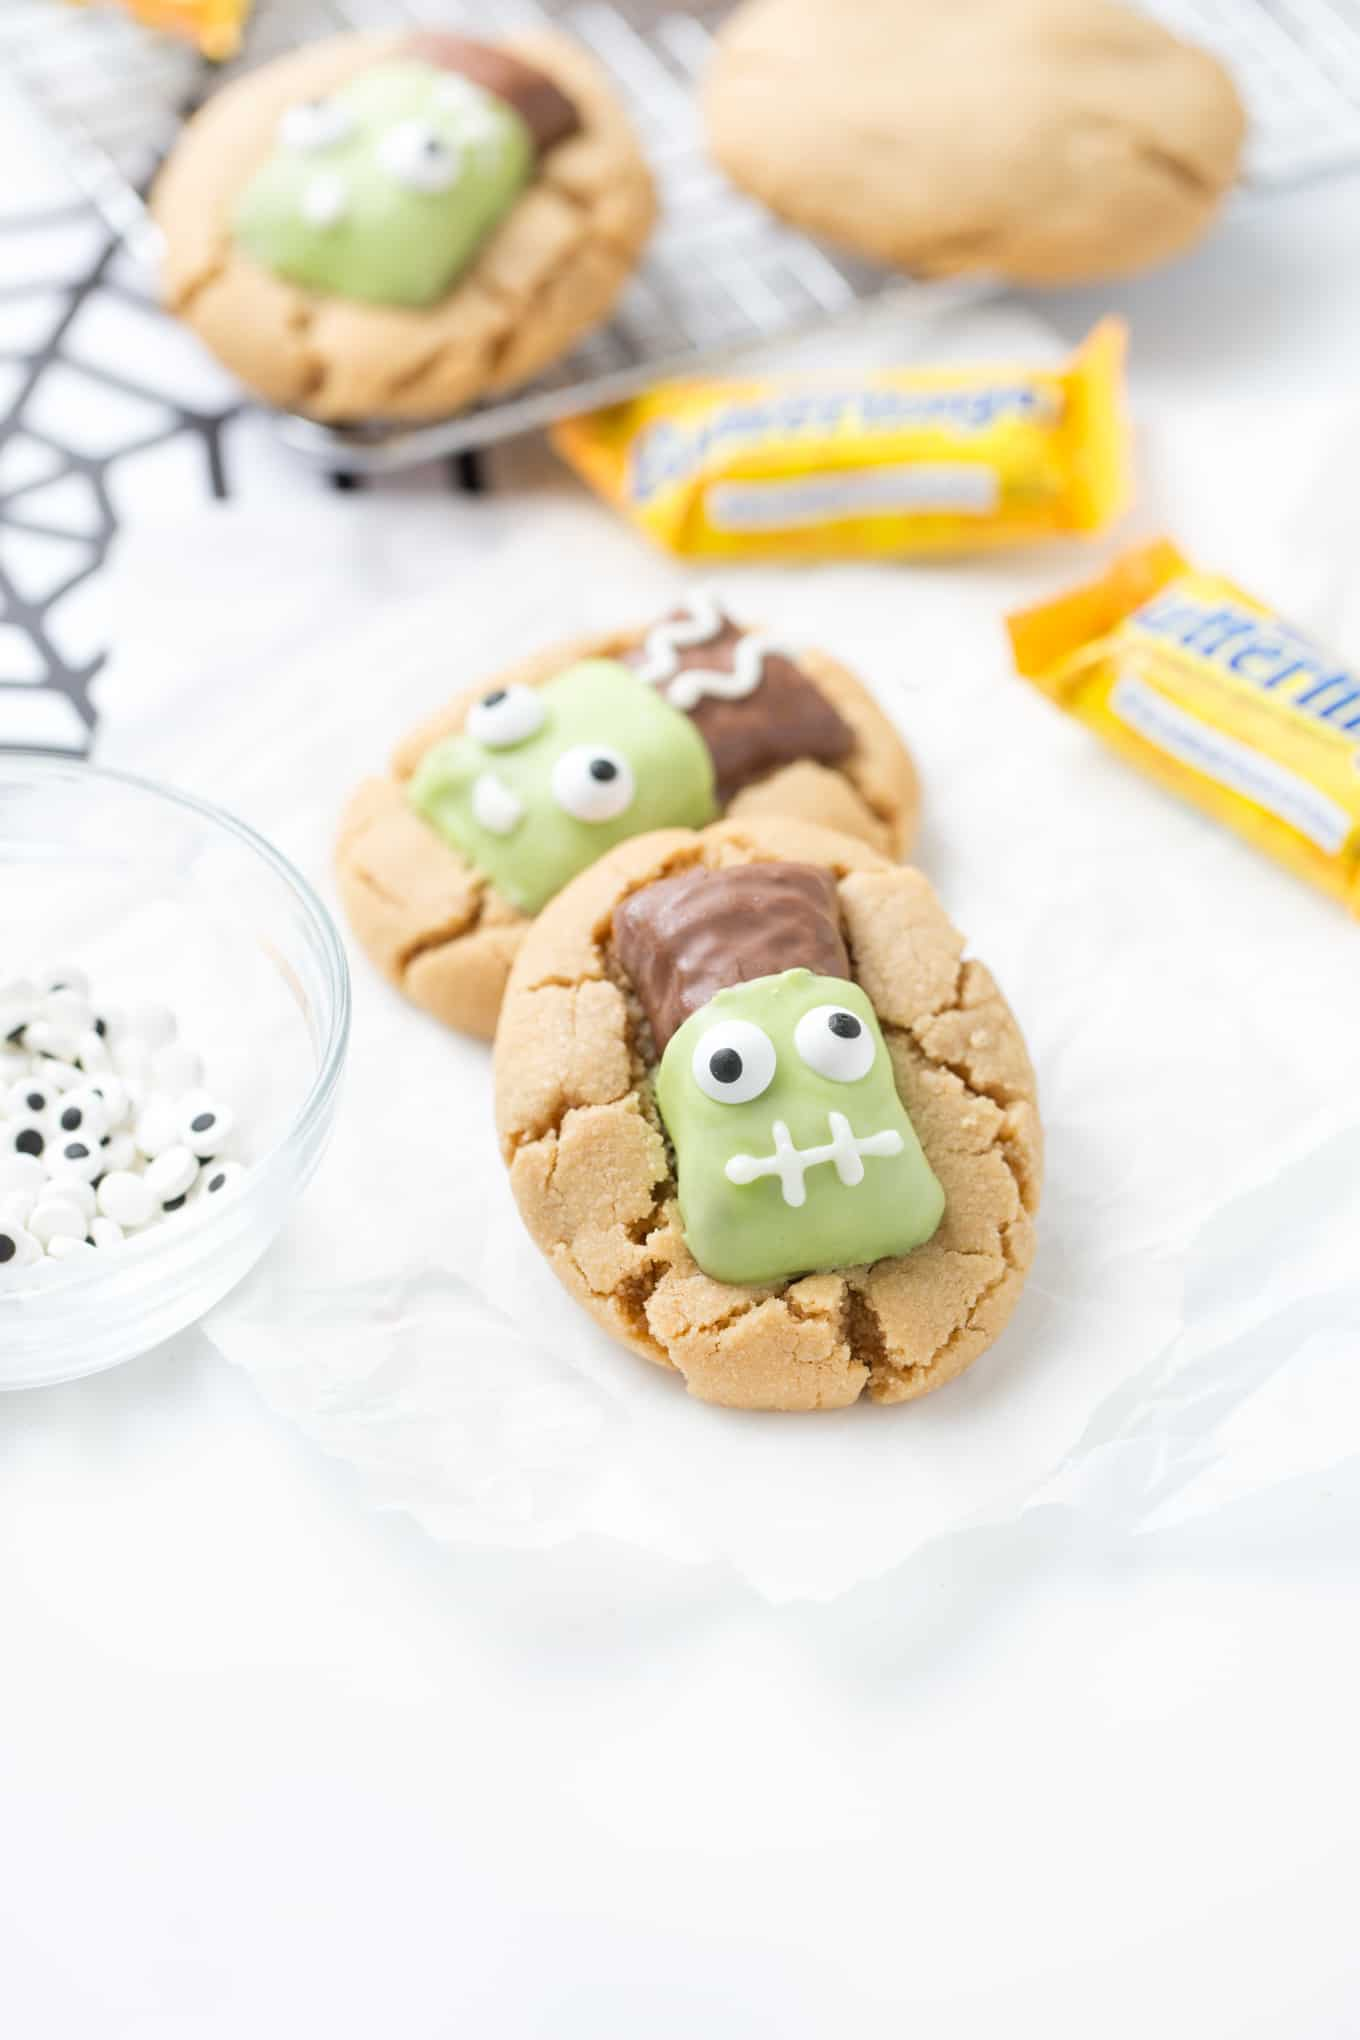 Peanut Butter Cookies topped with Frankenstein Butterfingers Candy Eyeballs